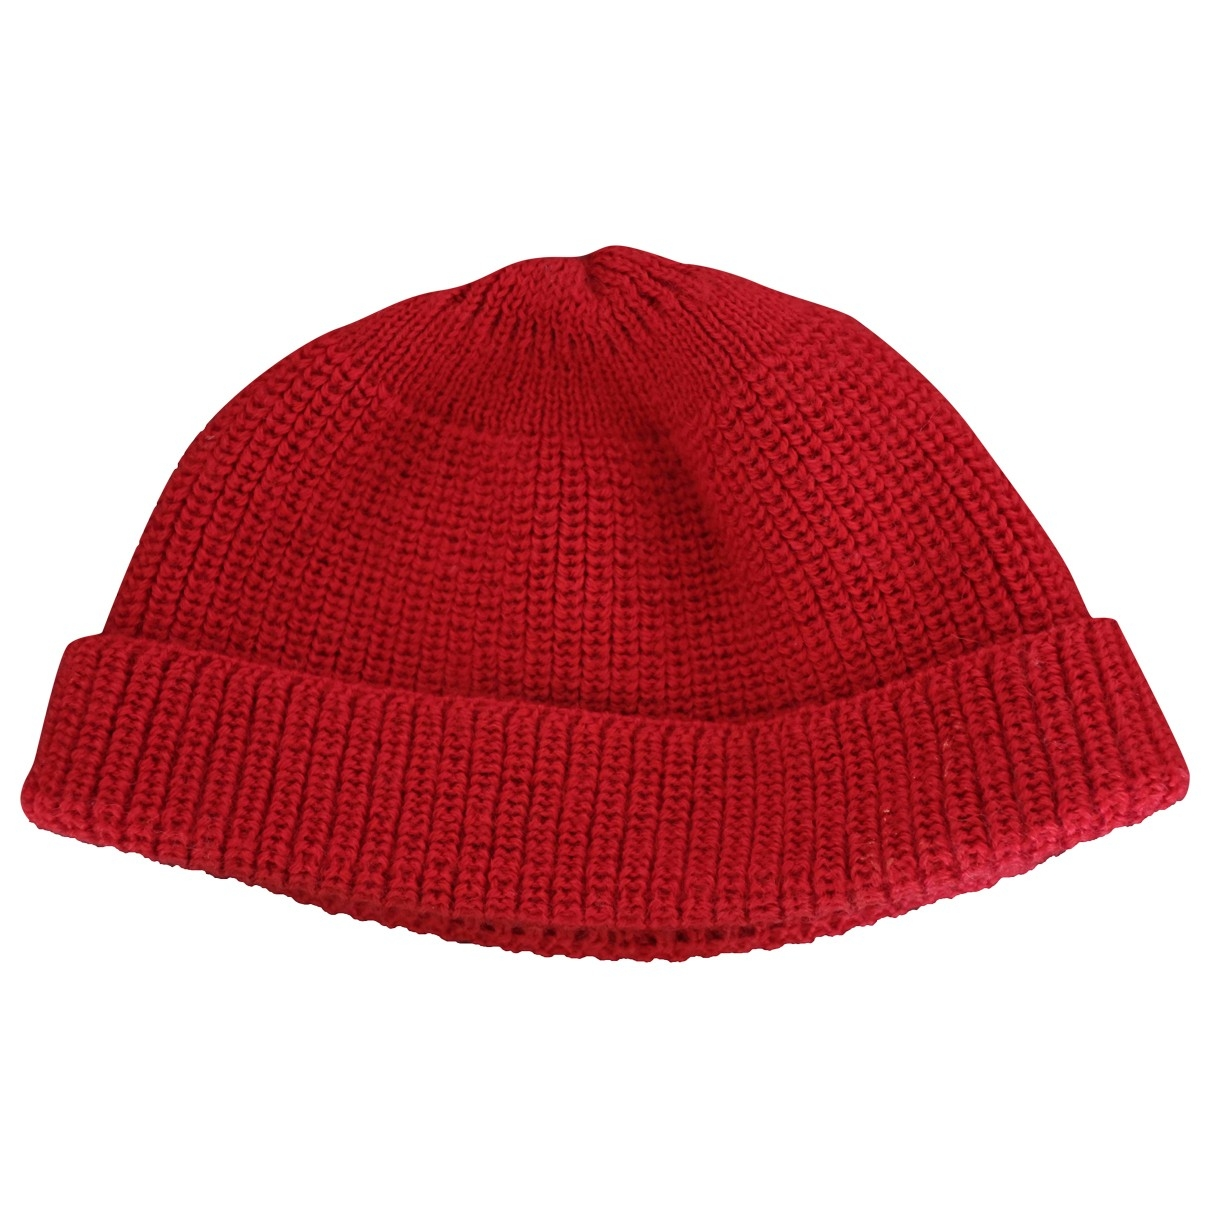 Non Signé / Unsigned \N Red Wool hat for Women S International